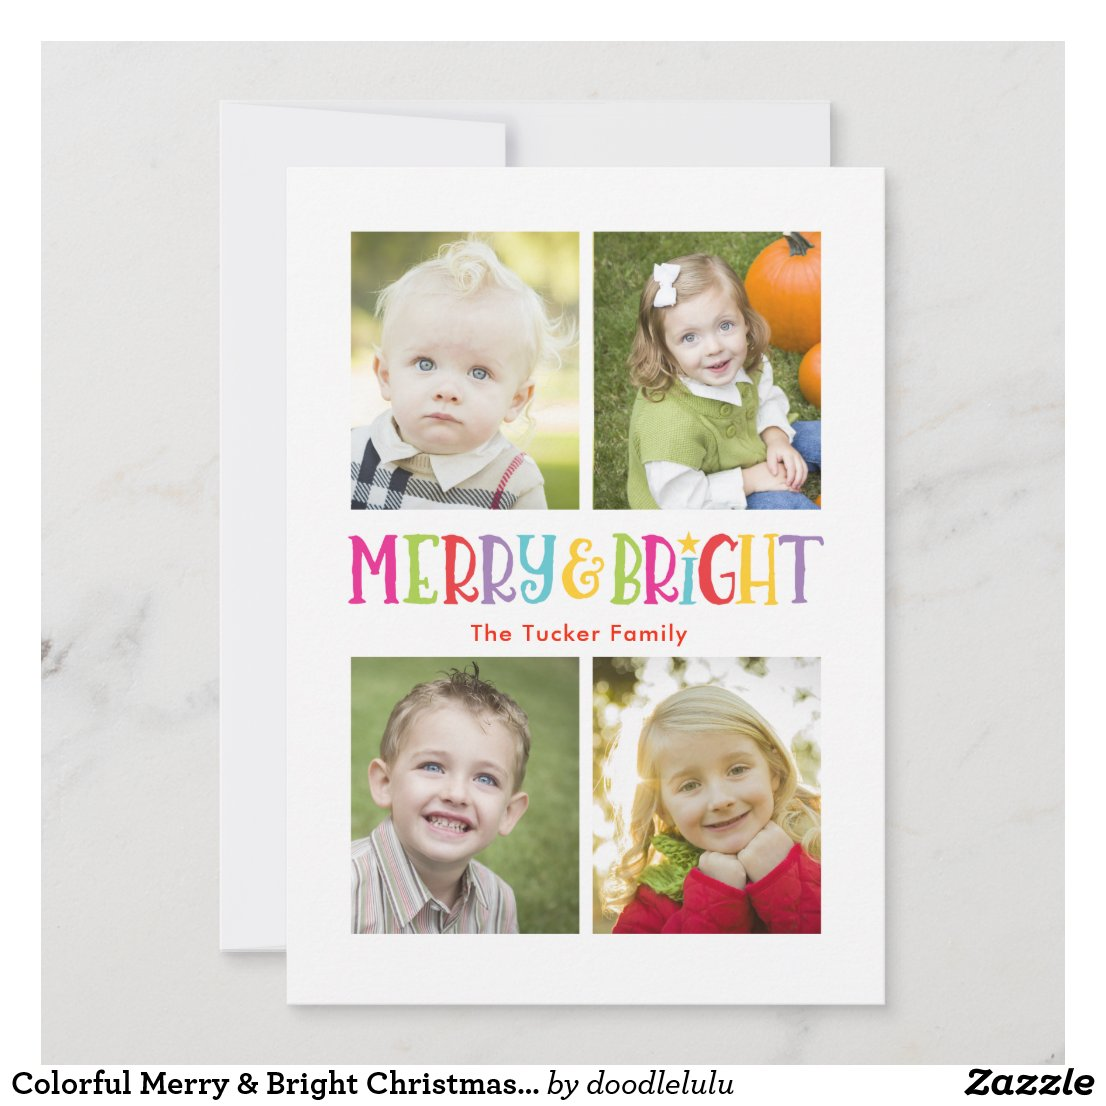 Colorful Merry & Bright Christmas Photo Collage Holiday Card